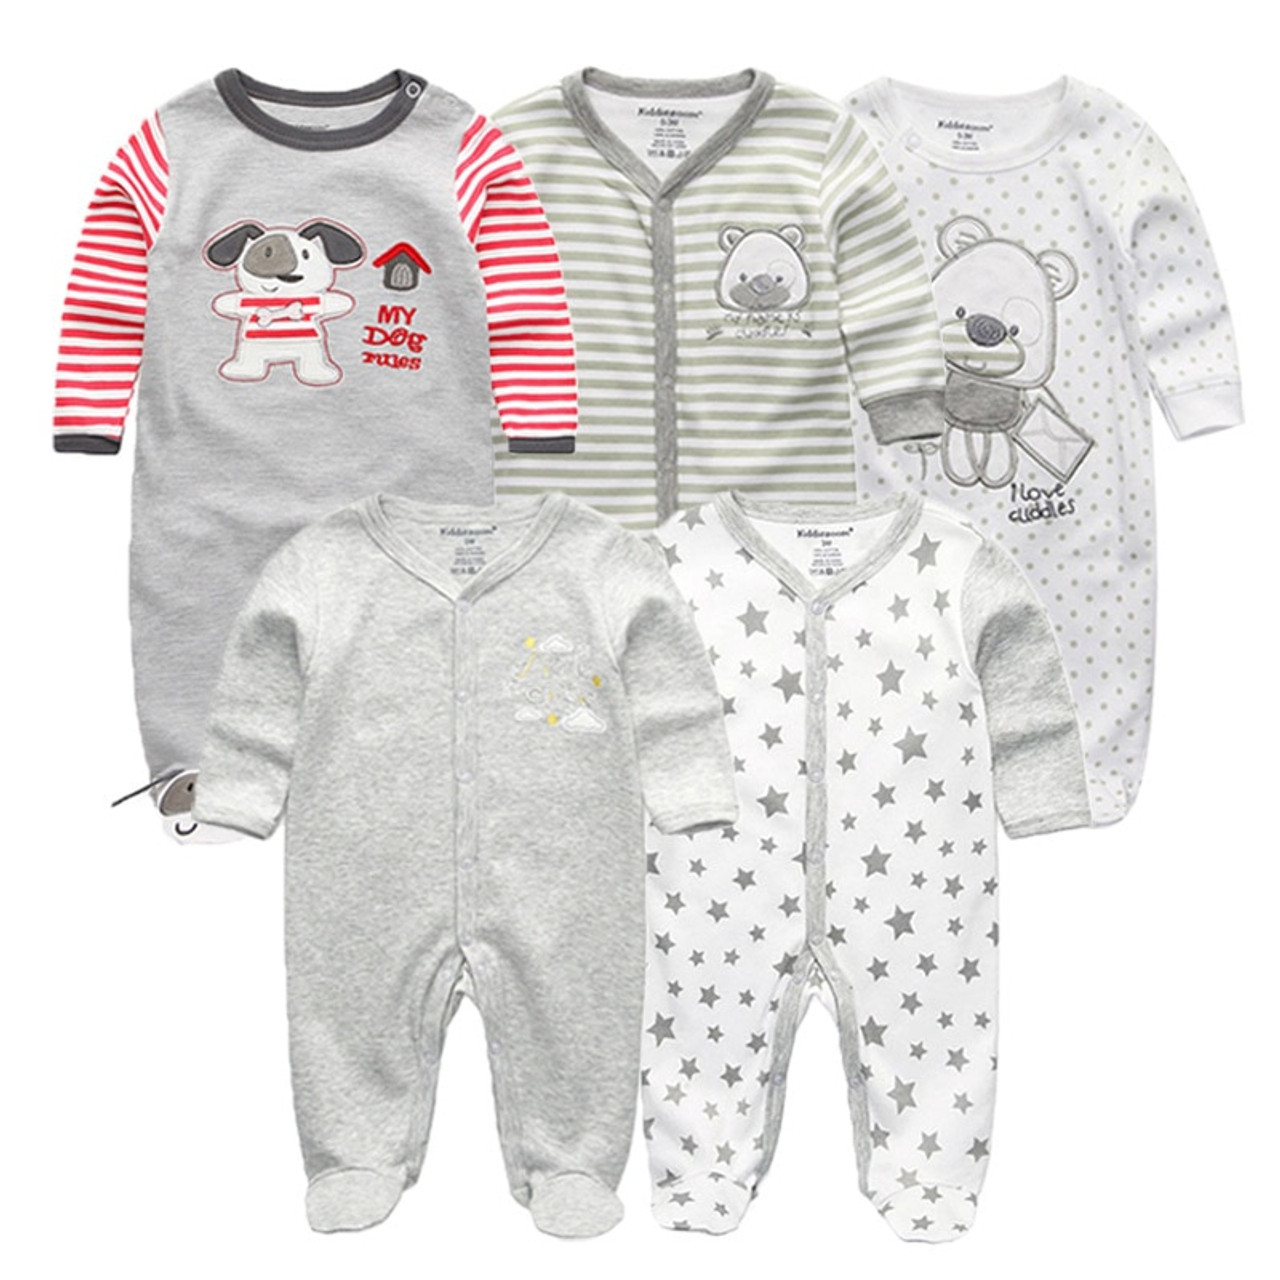 ddd63f1cac23 5 PCS lot newbron 2018 winter long sleeve baby rompers set baby jumpsuit  girls baby ...